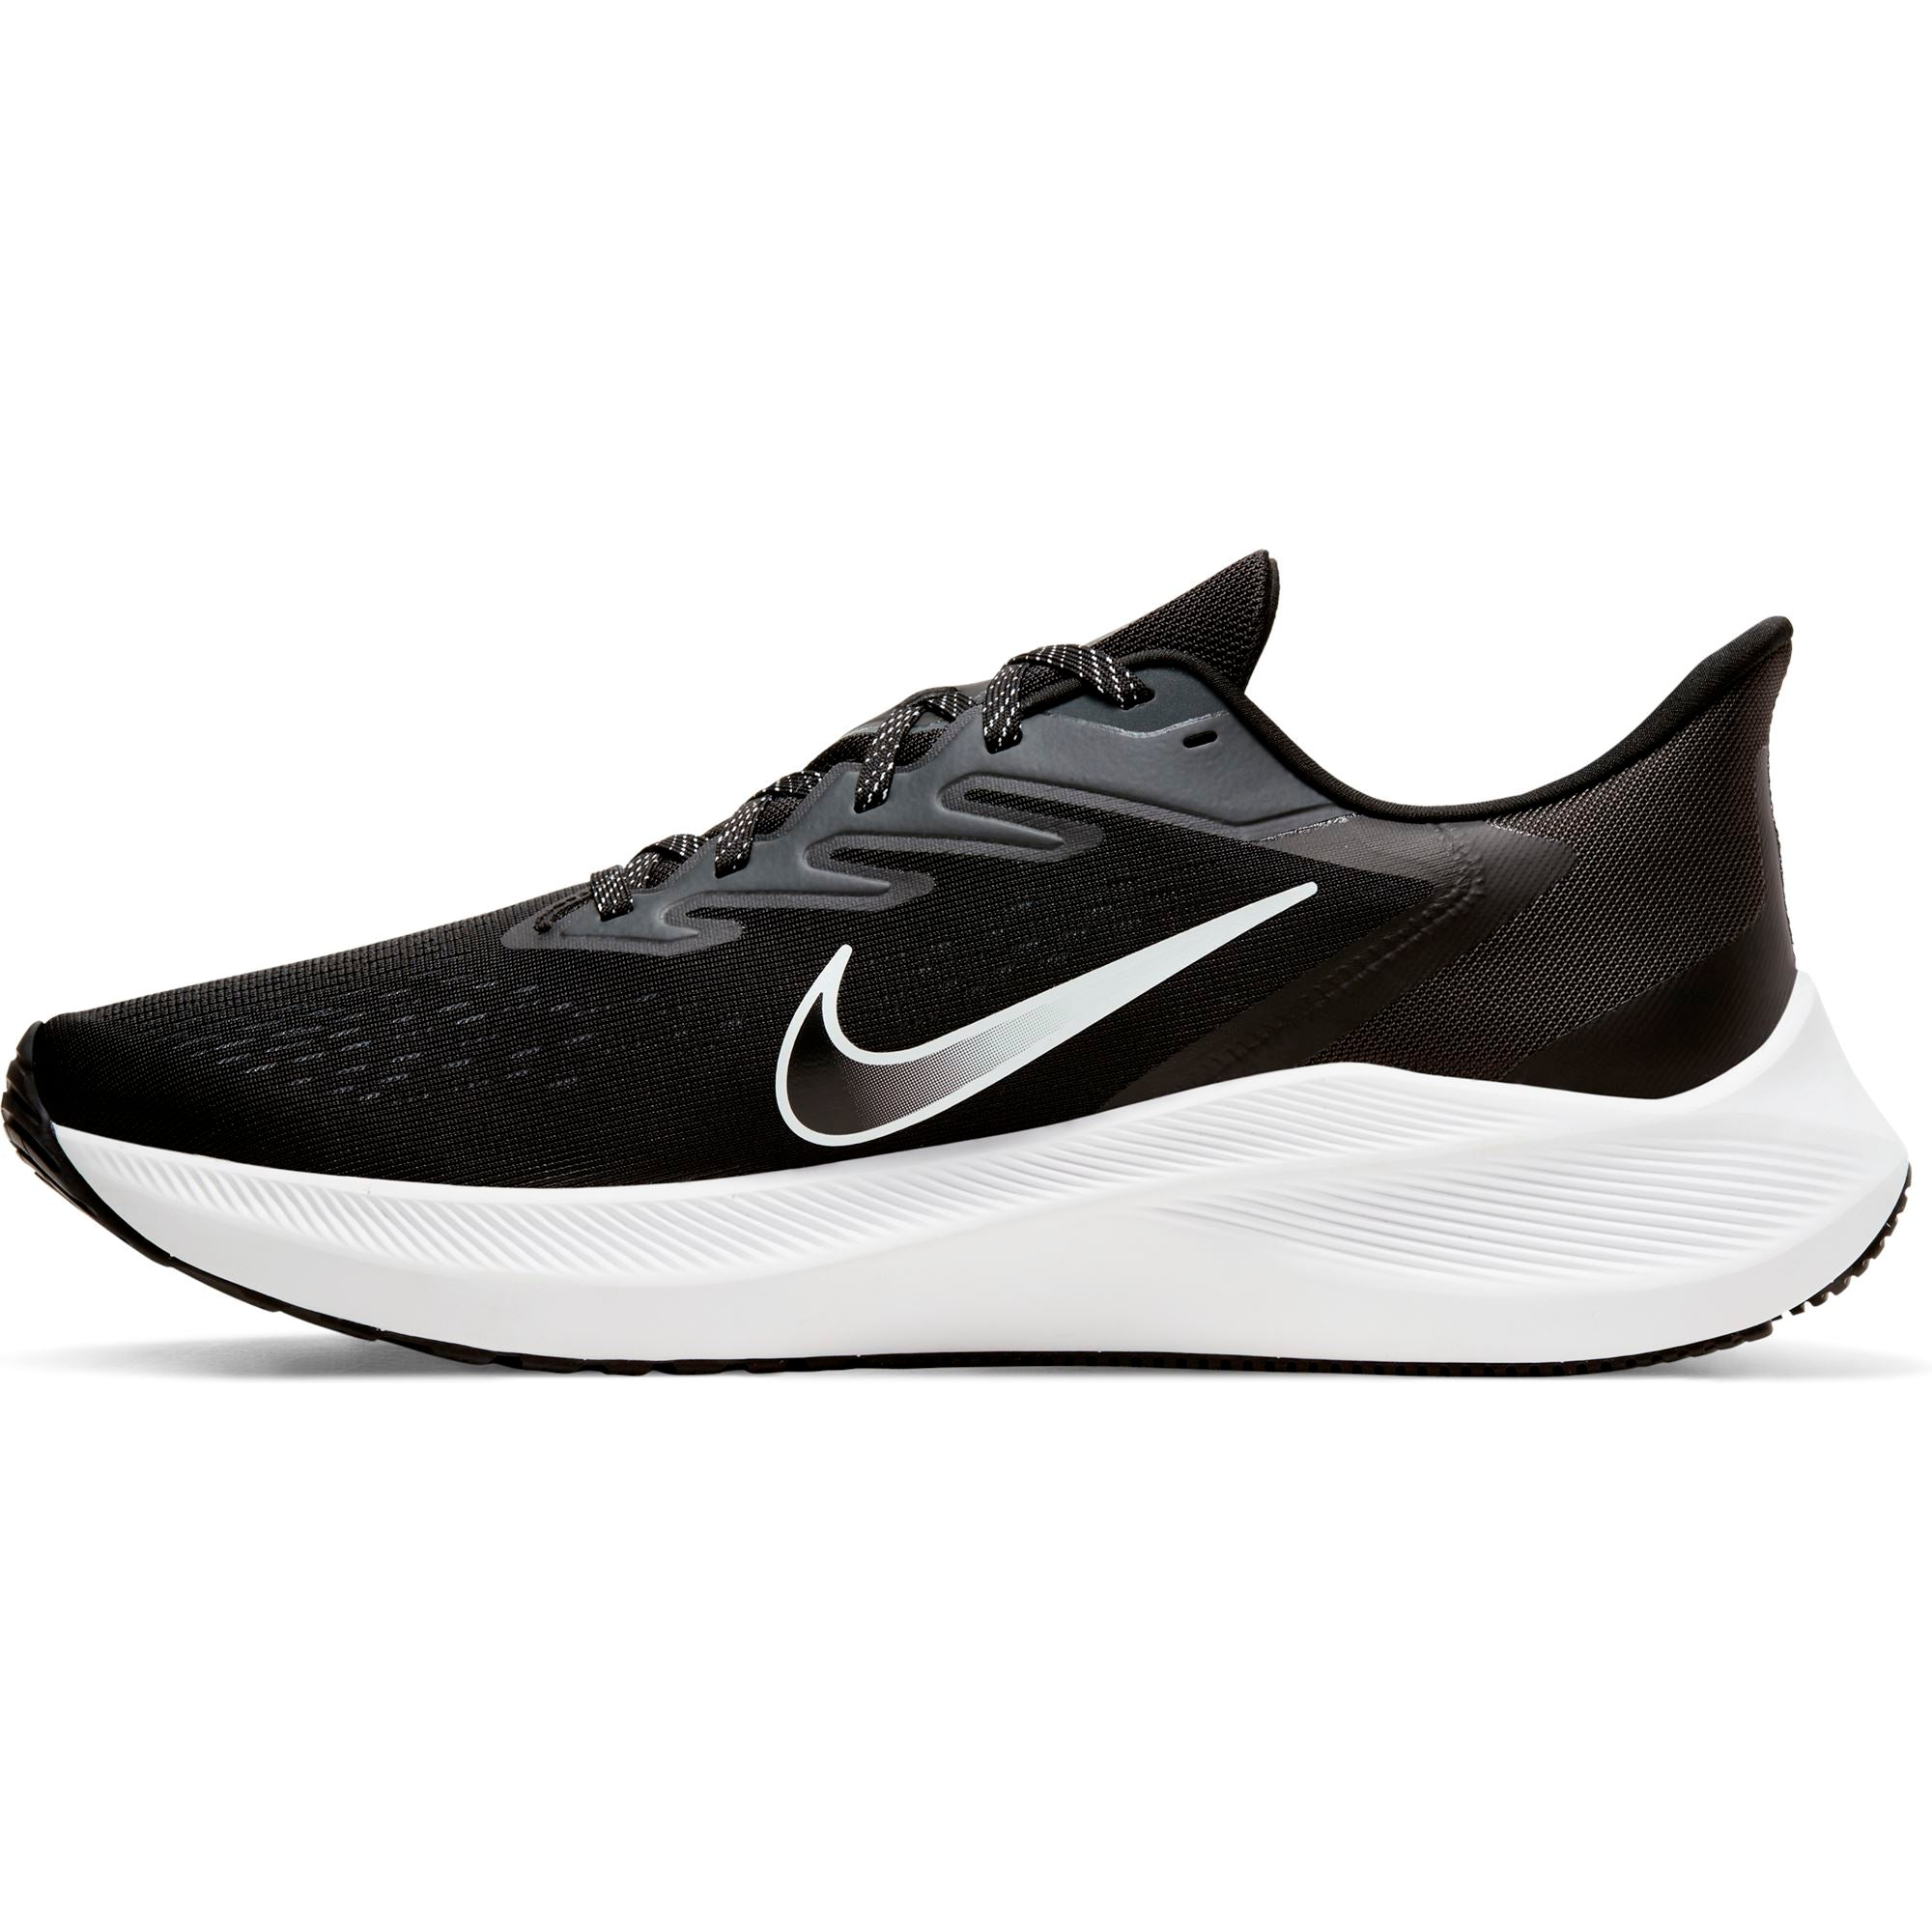 Nike Mens Air Zoom Winflo 7 - Black/White-Anthracite SP-Footwear-Mens Nike